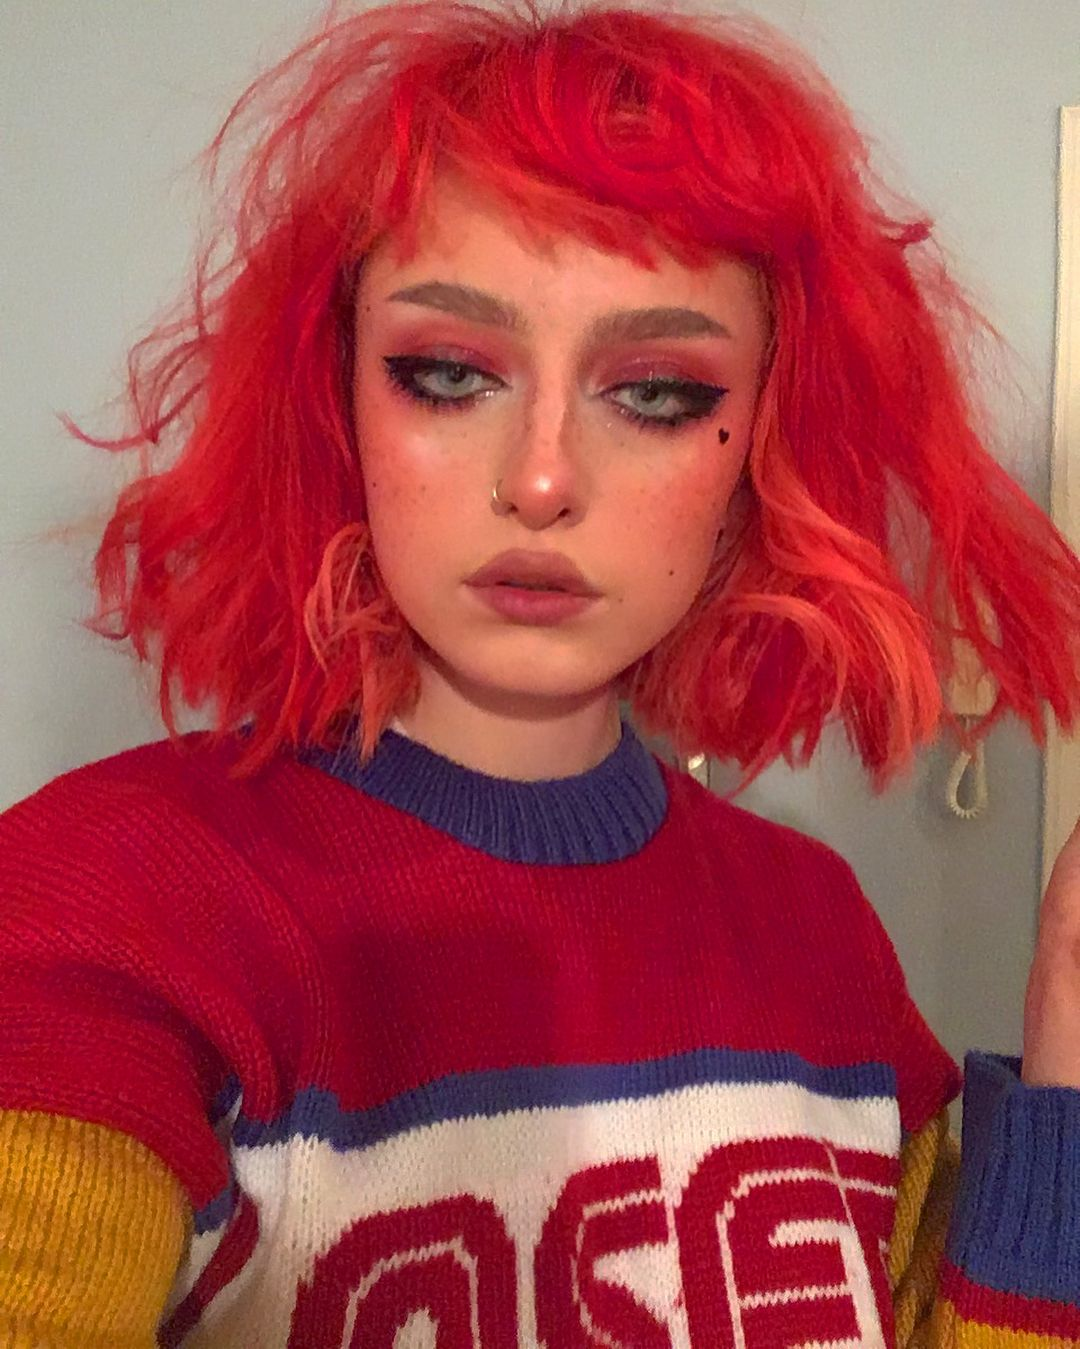 Discussion on this topic: Instagram Insta-glam: Fiery RedHair, instagram-insta-glam-fiery-redhair/